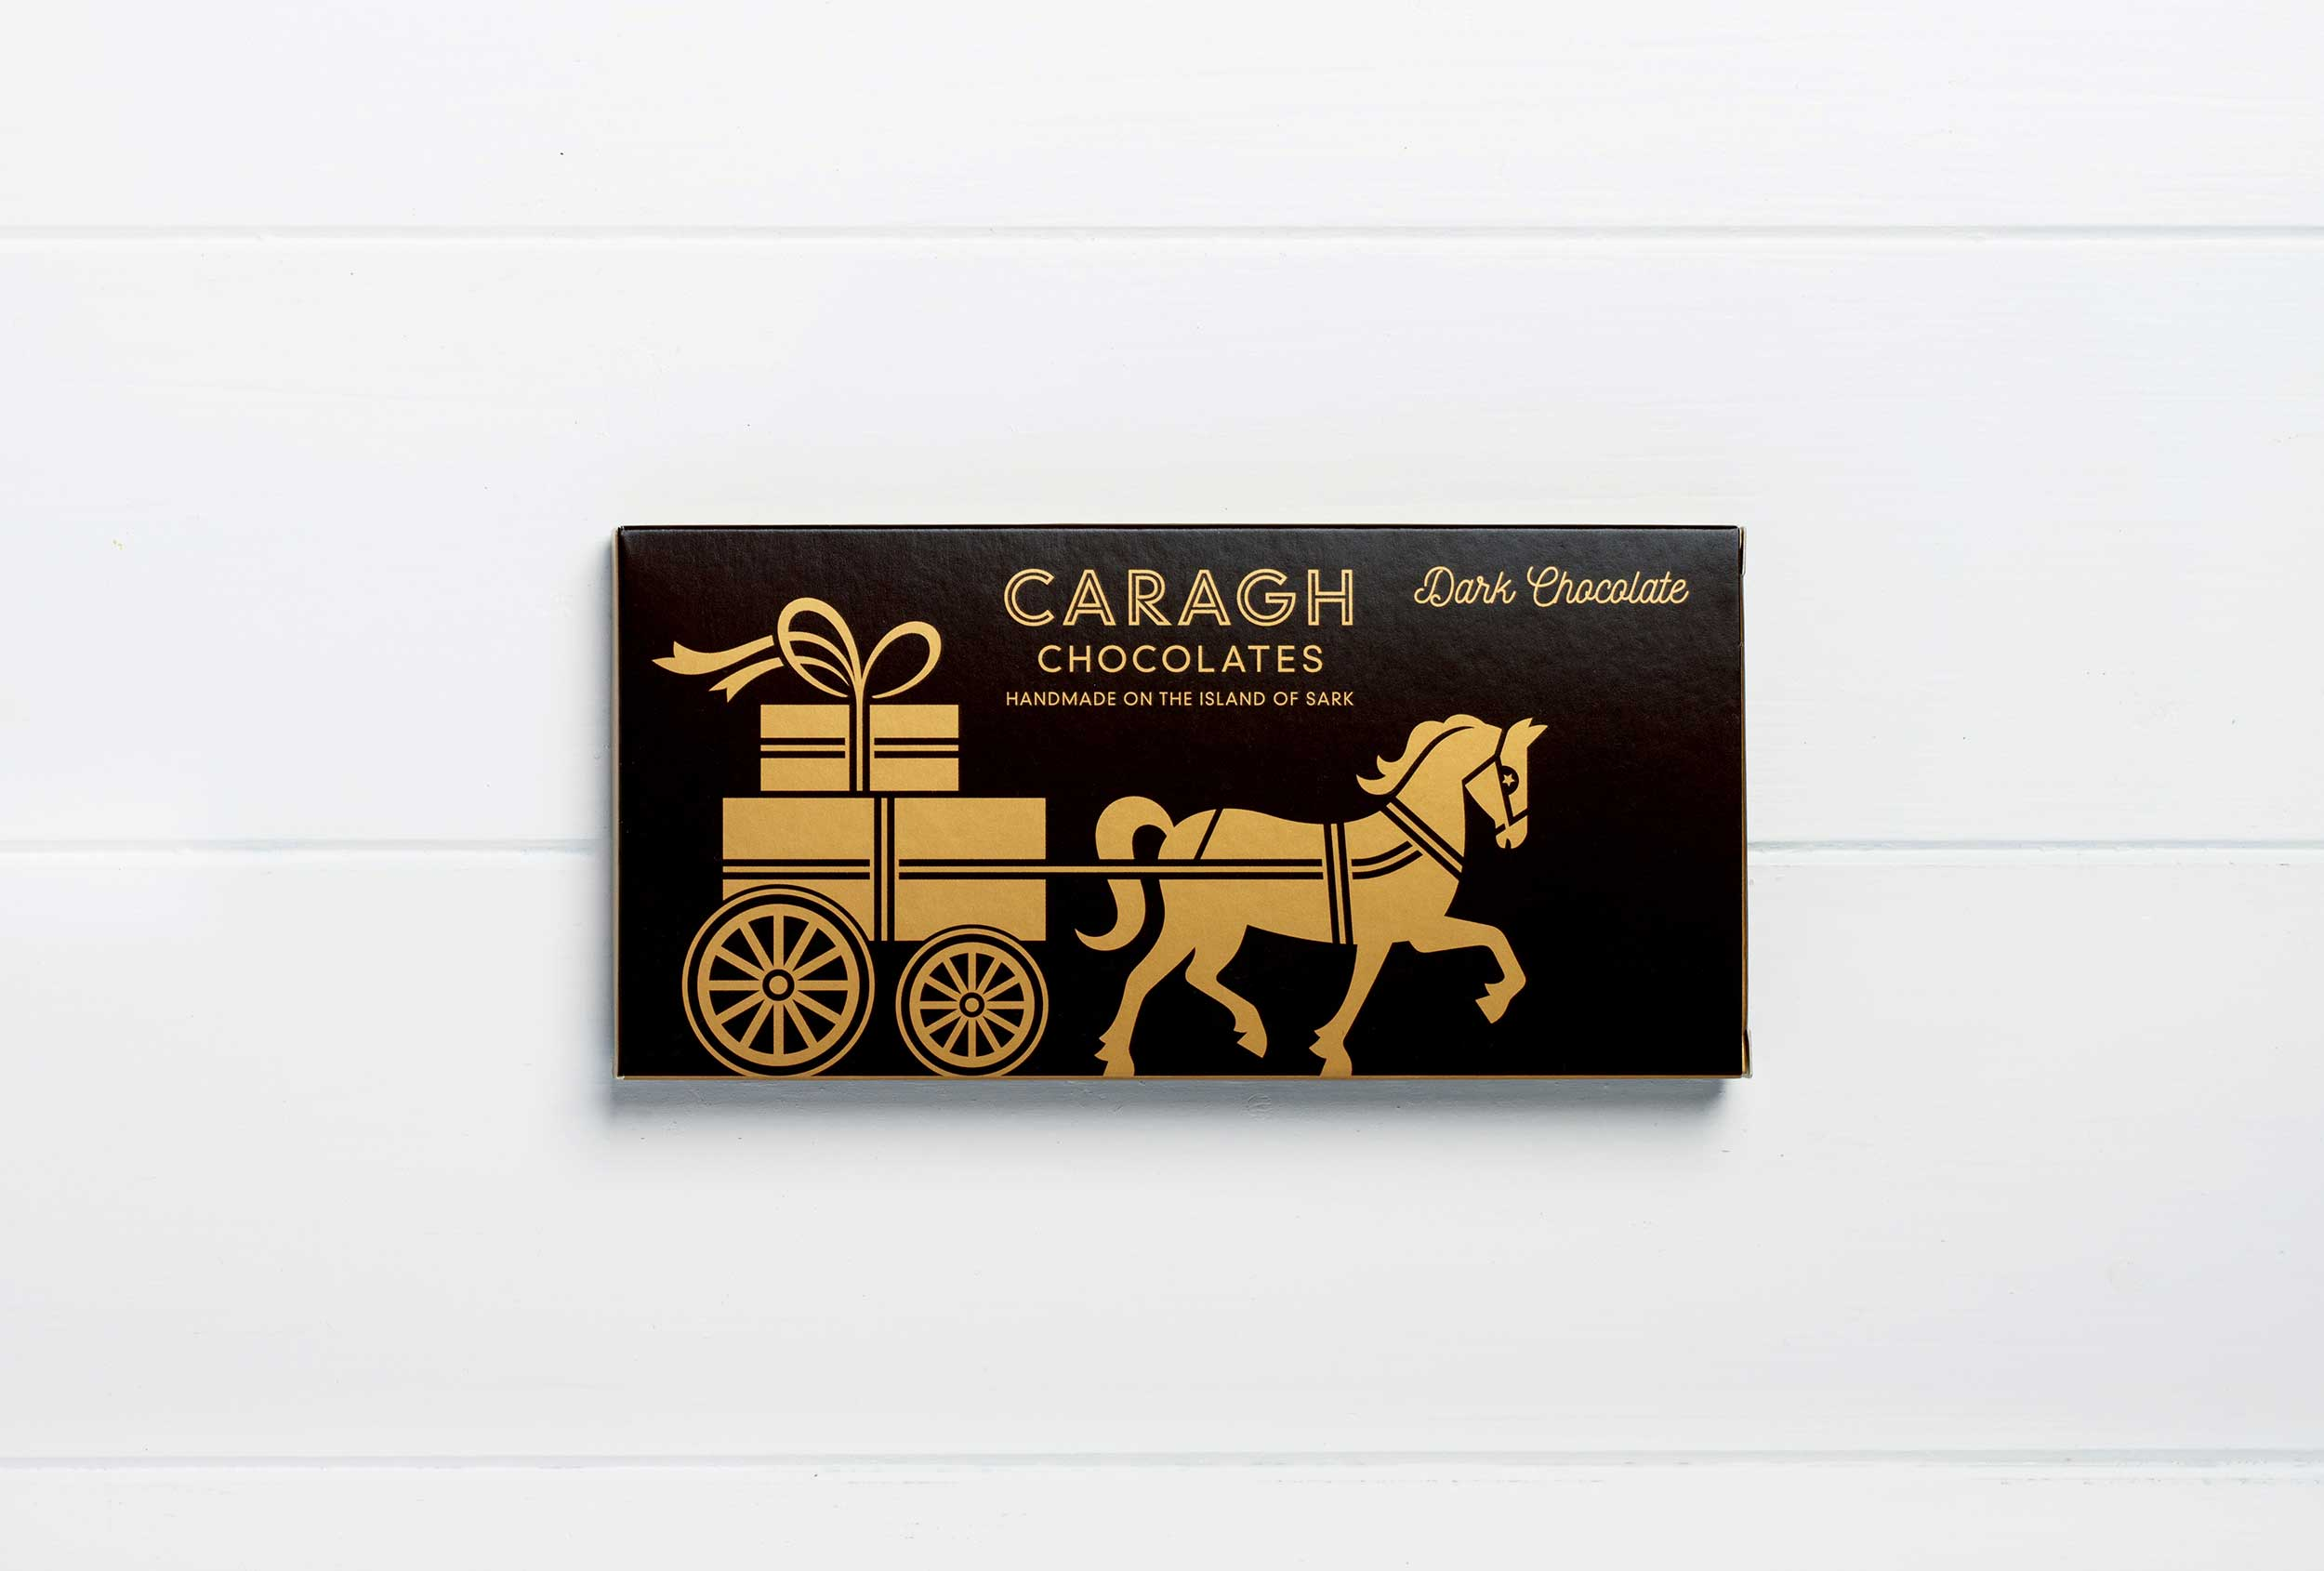 Packaging design for Caragh Chocolate bars.